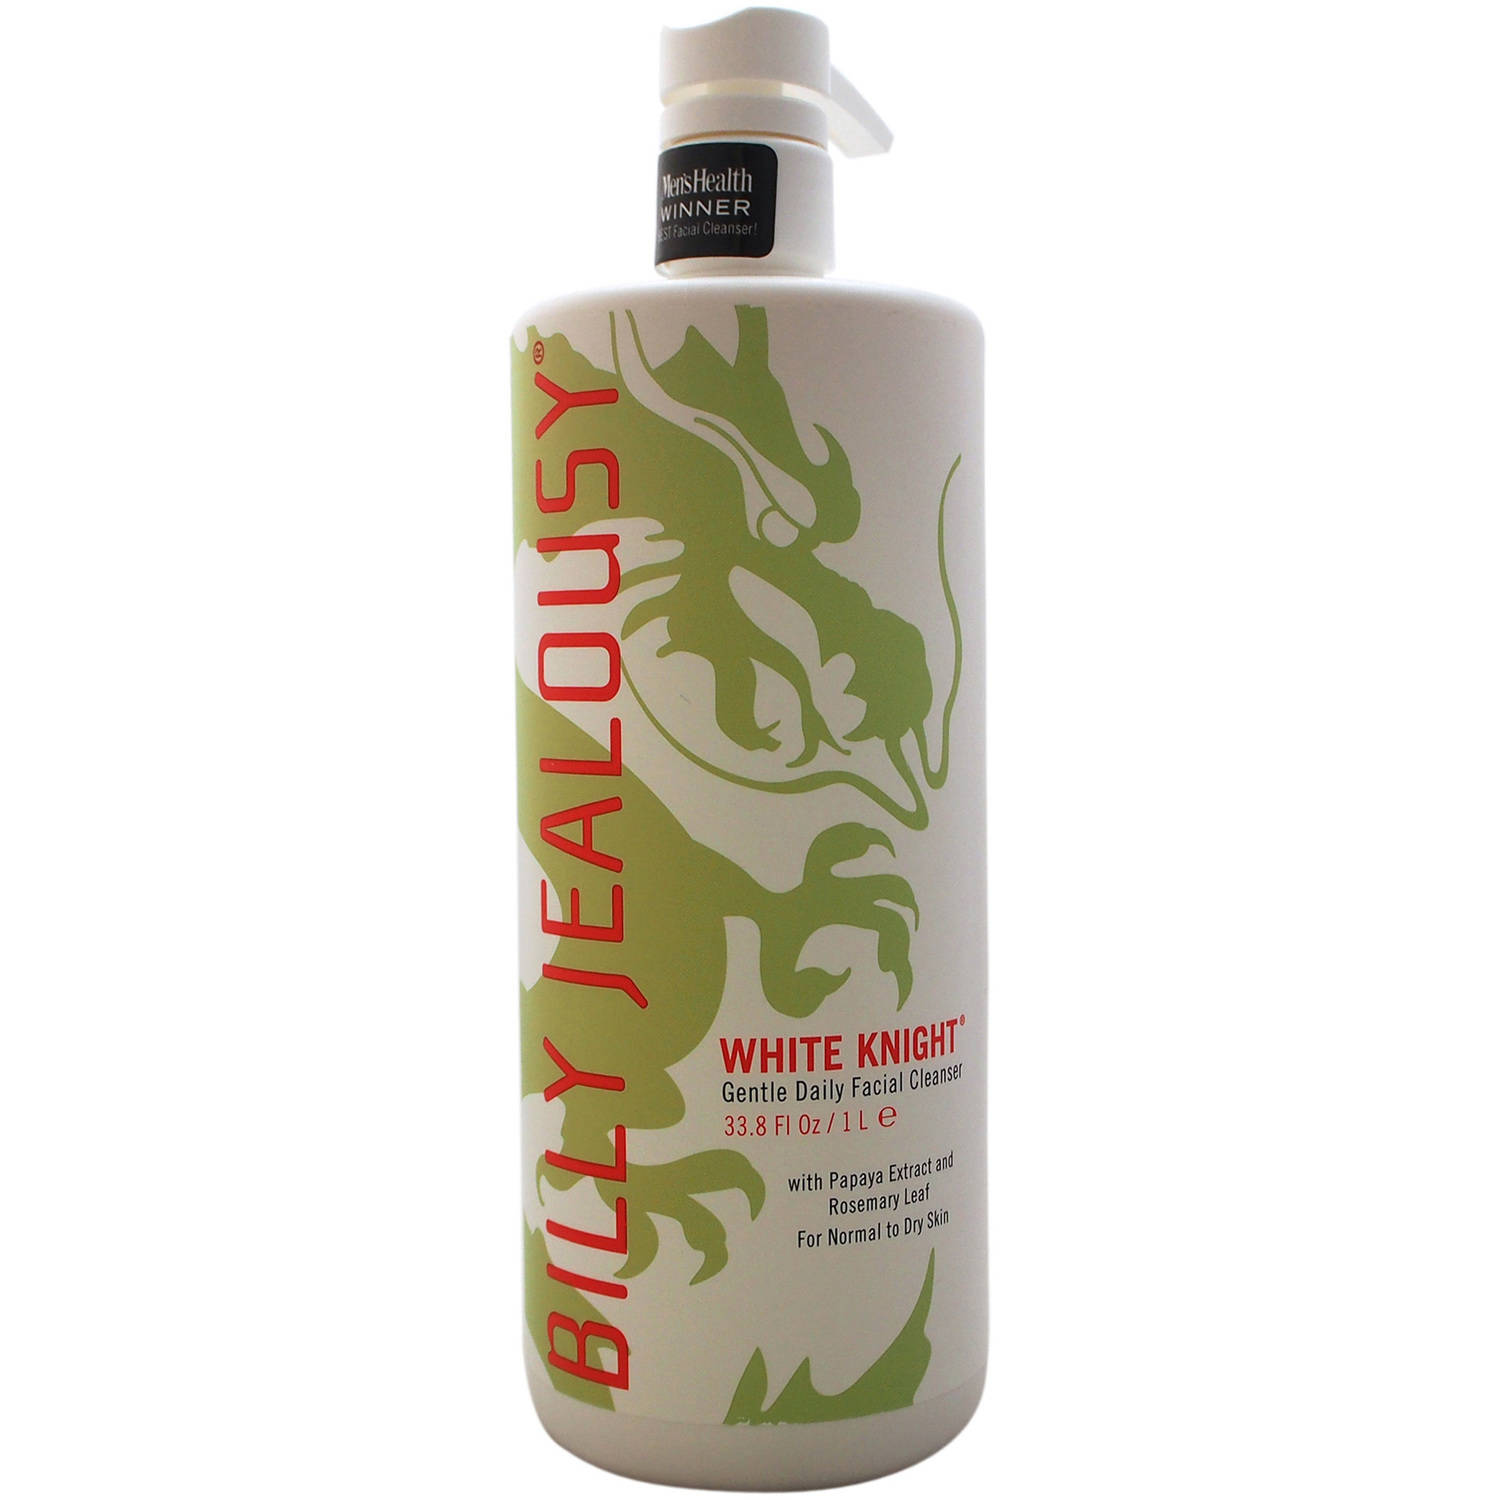 White Knight Gentle Daily Facial Cleanser by Billy Jealousy for Men, 33.8 oz